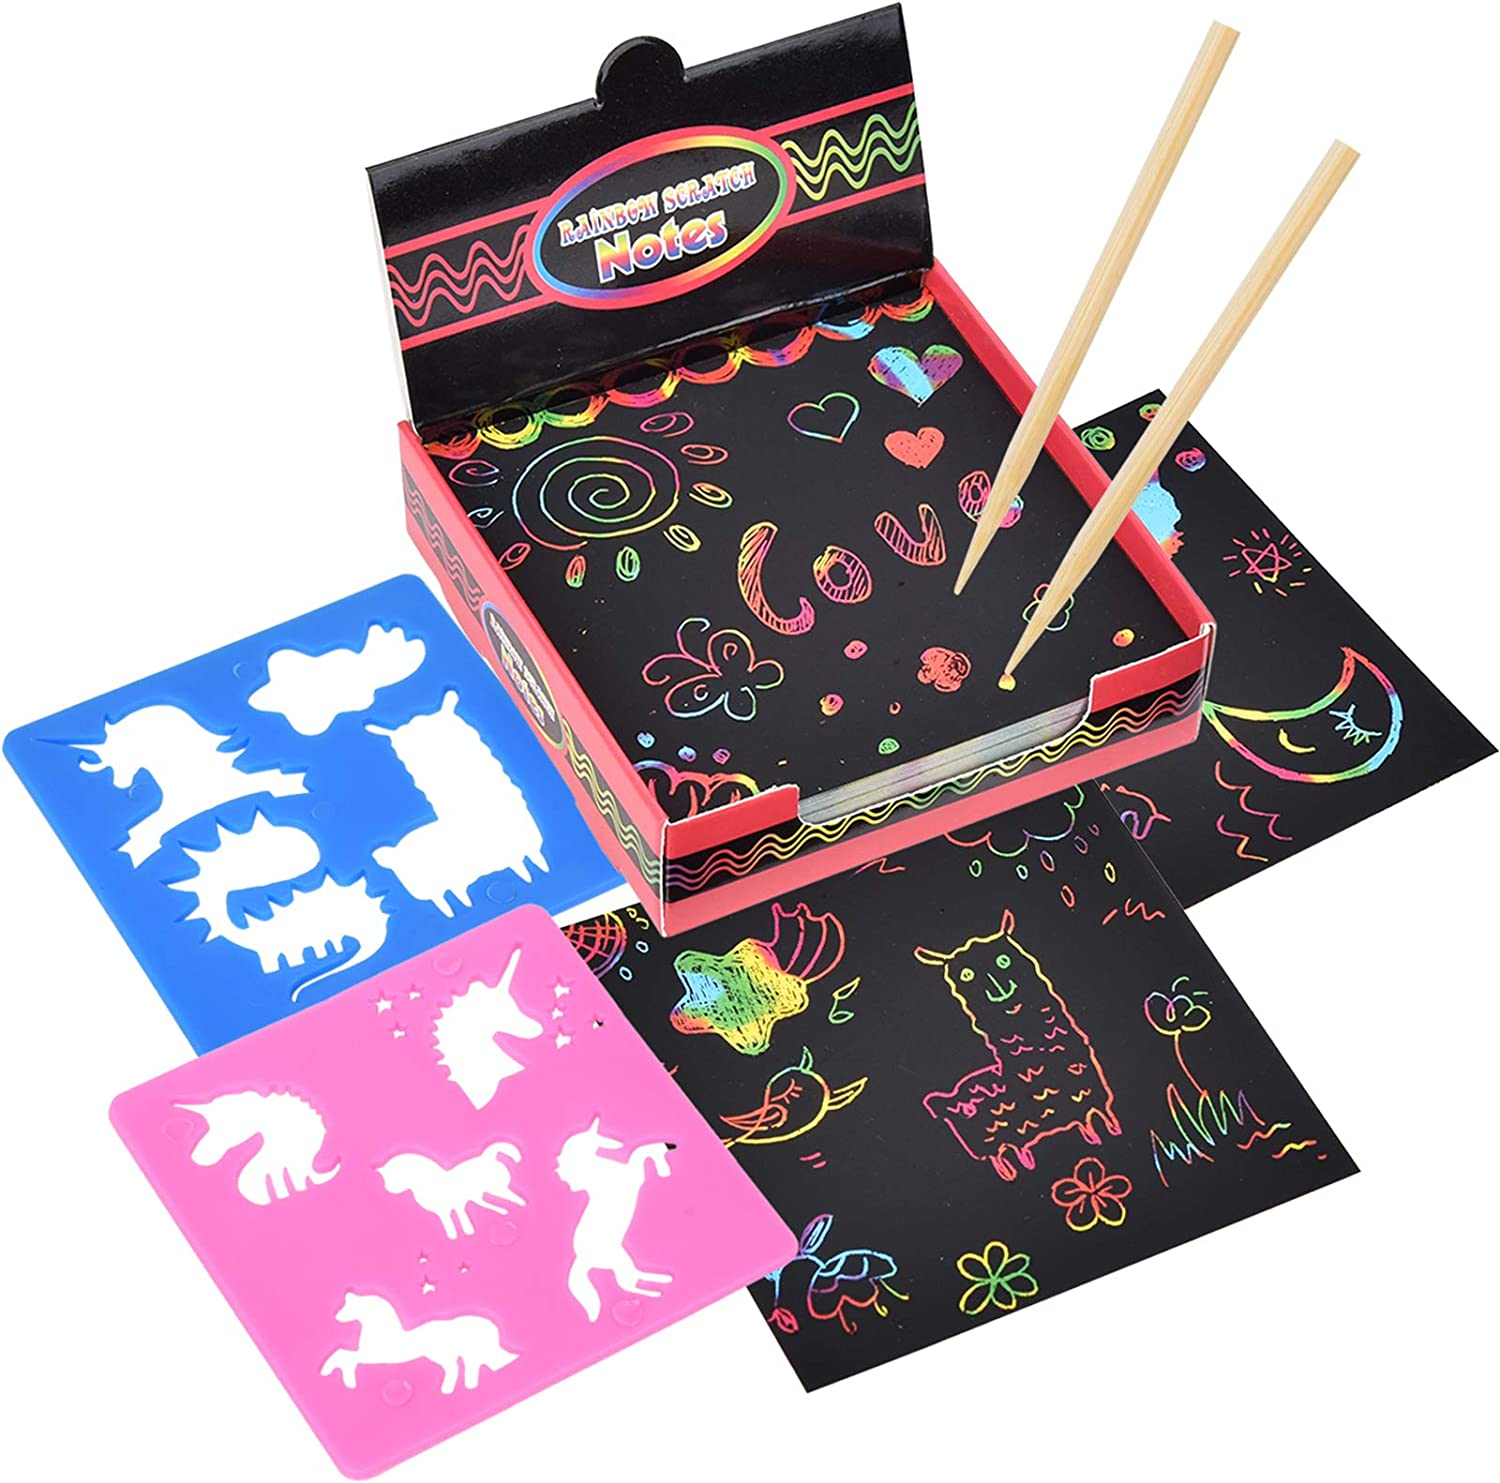 Scratch Arts [125 Sheets + 2 Wooden Stylus + 2 Stencils] Arts and Crafts 71% OFF £5.82 @ Amazon